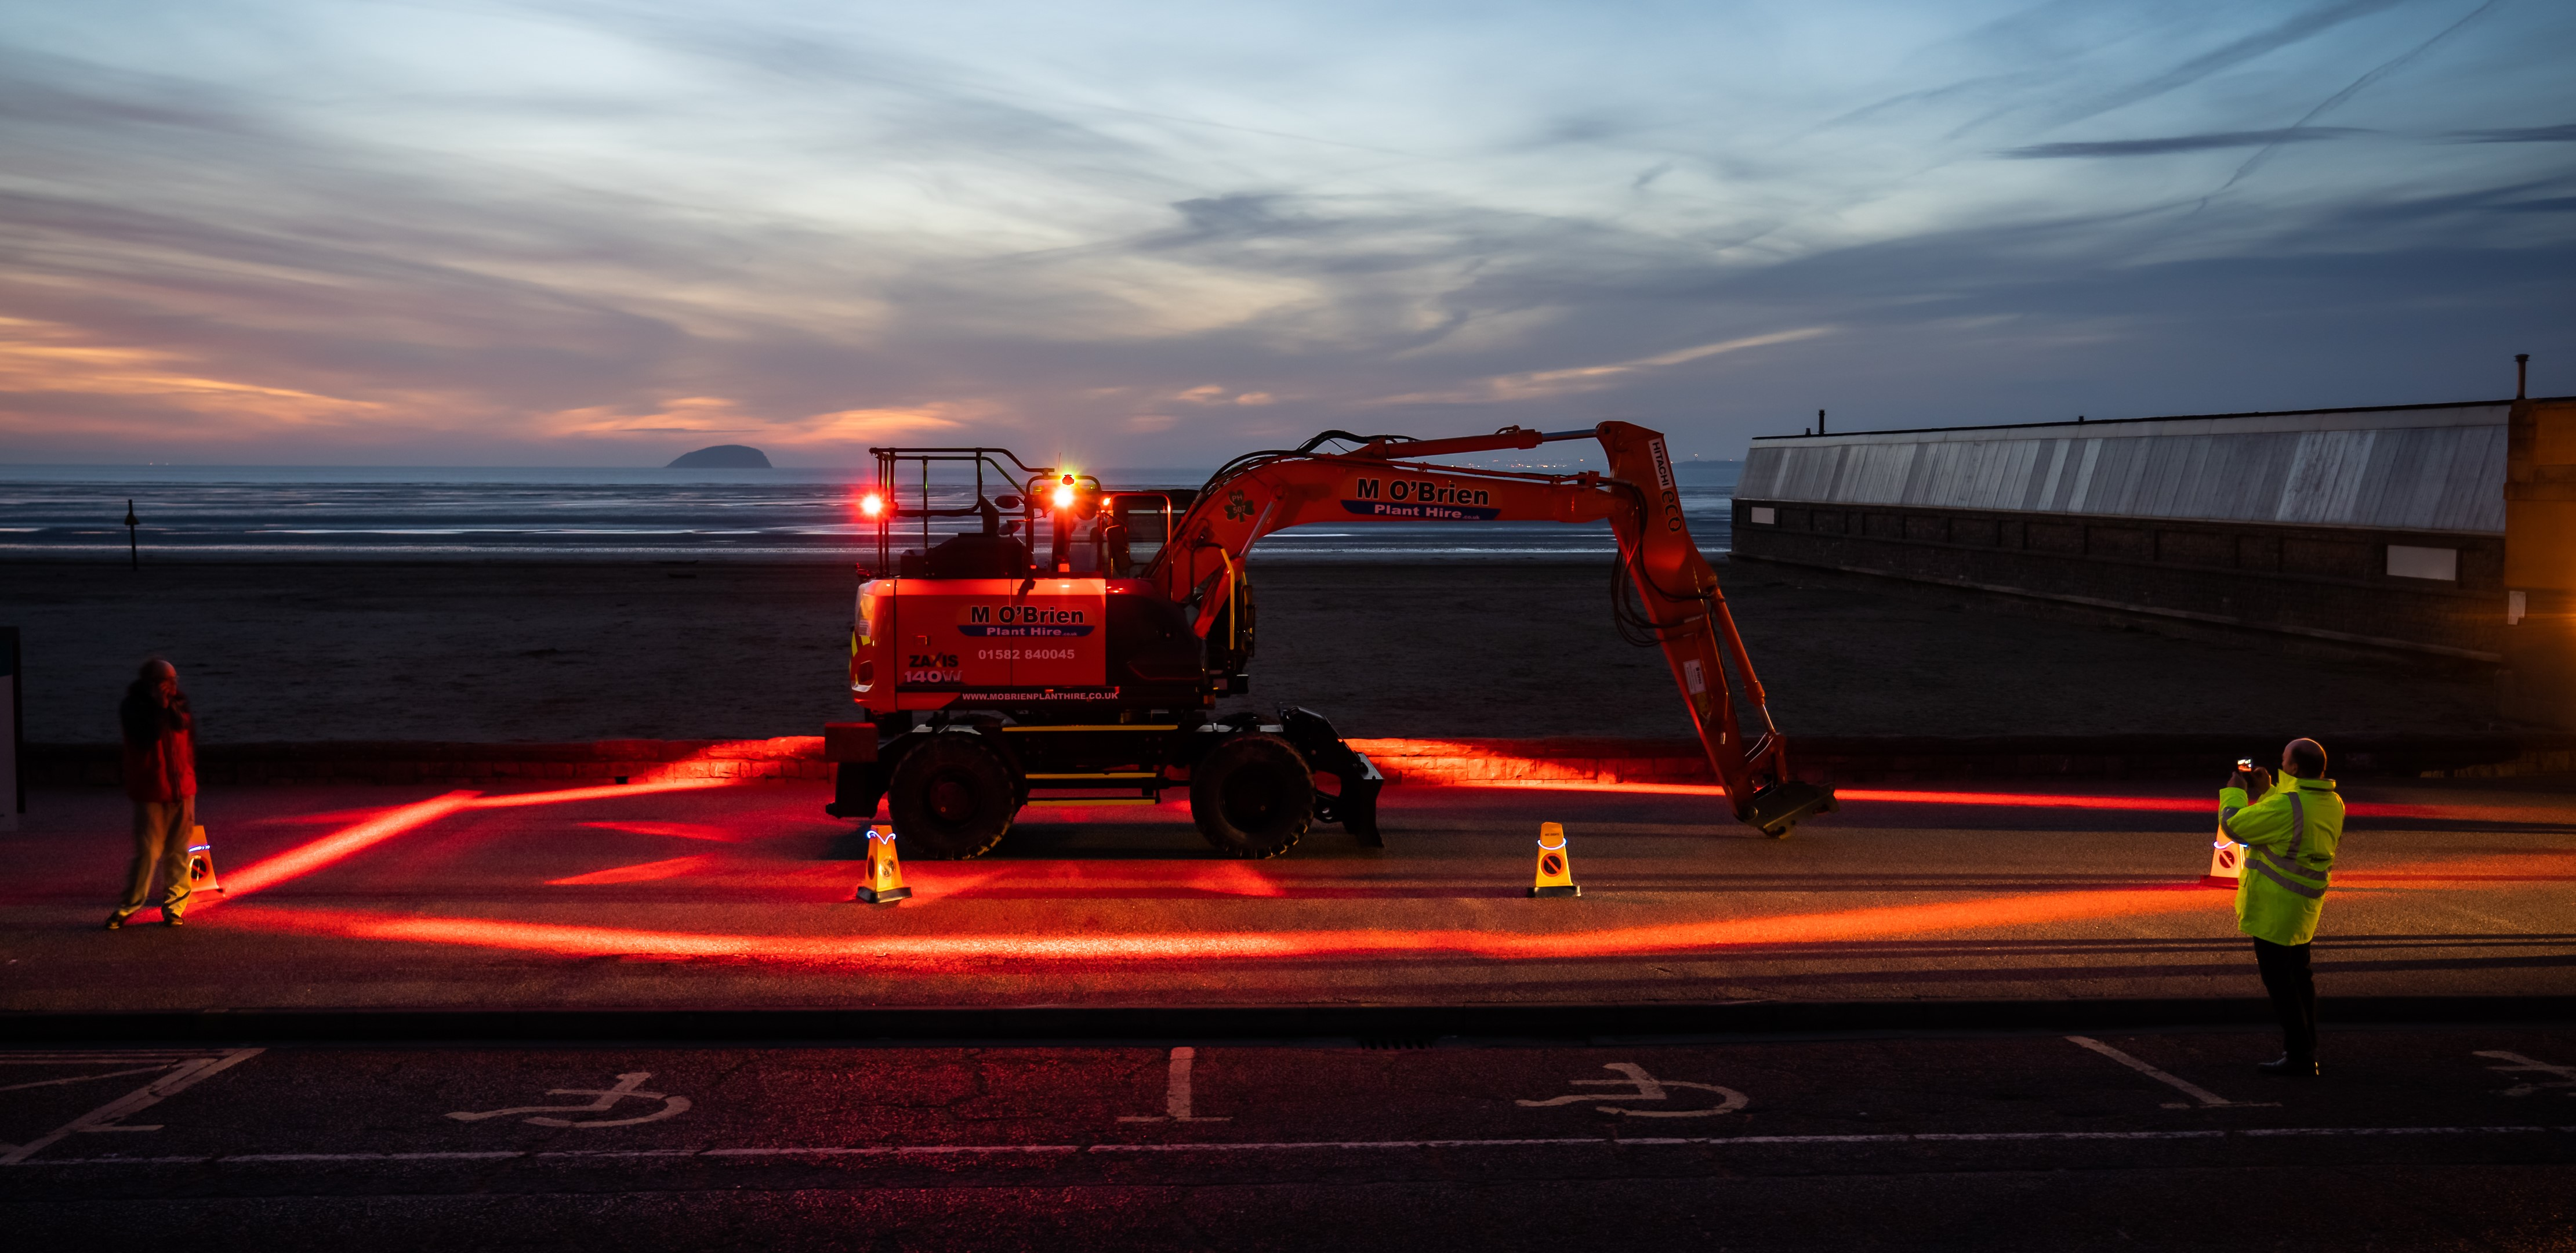 ZX140W wheeled excavator fitted with Halo exclusion zone safety